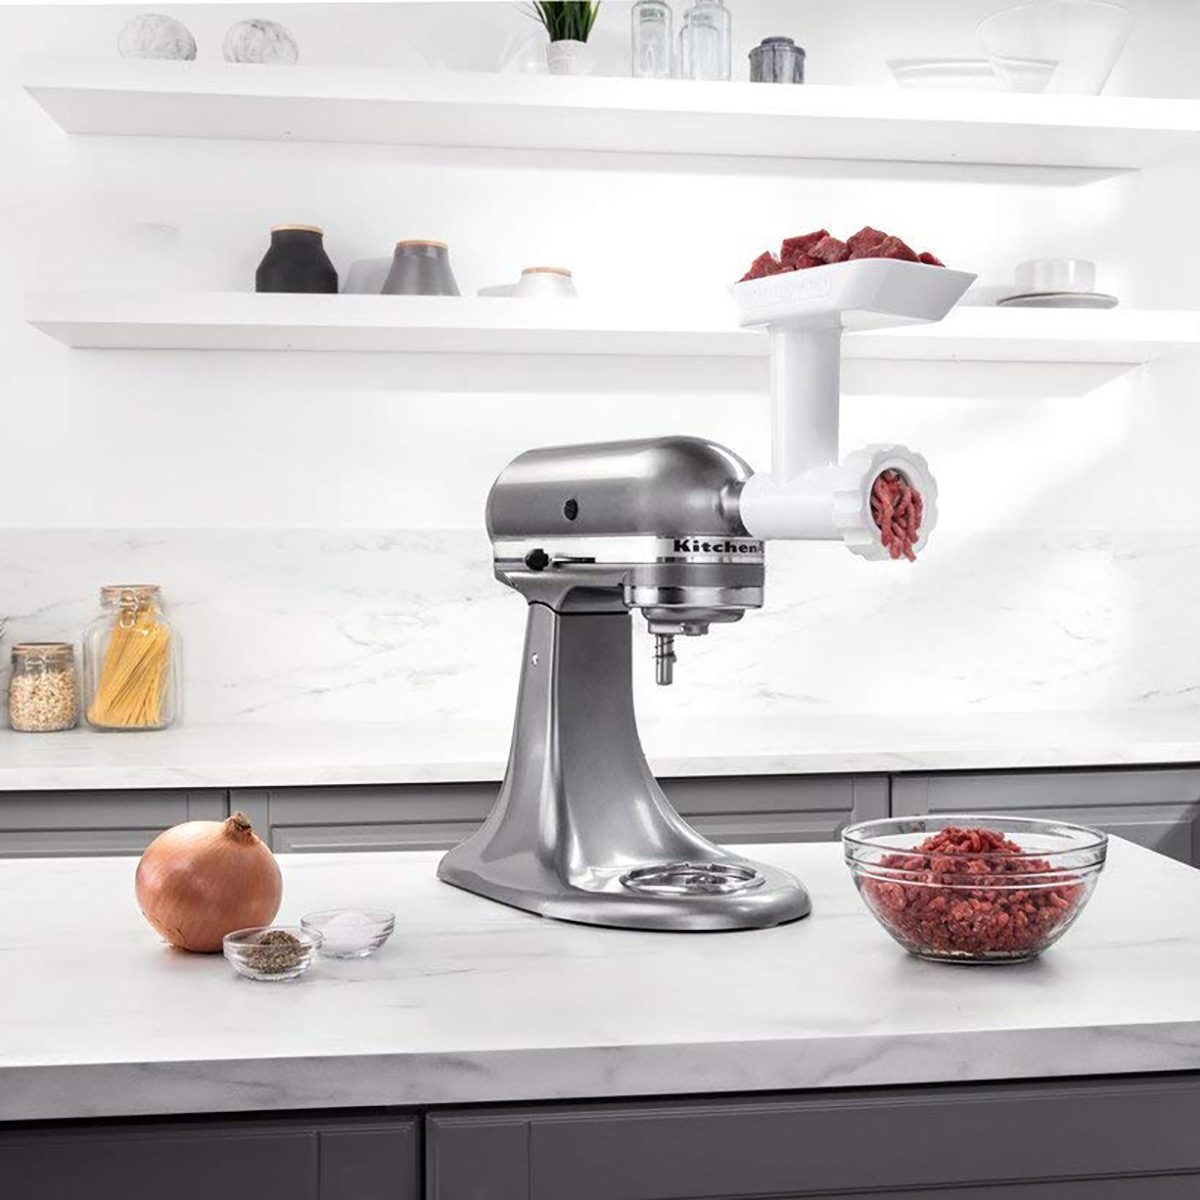 The 9 Best Kitchenaid Attachments You Can Buy On Amazon